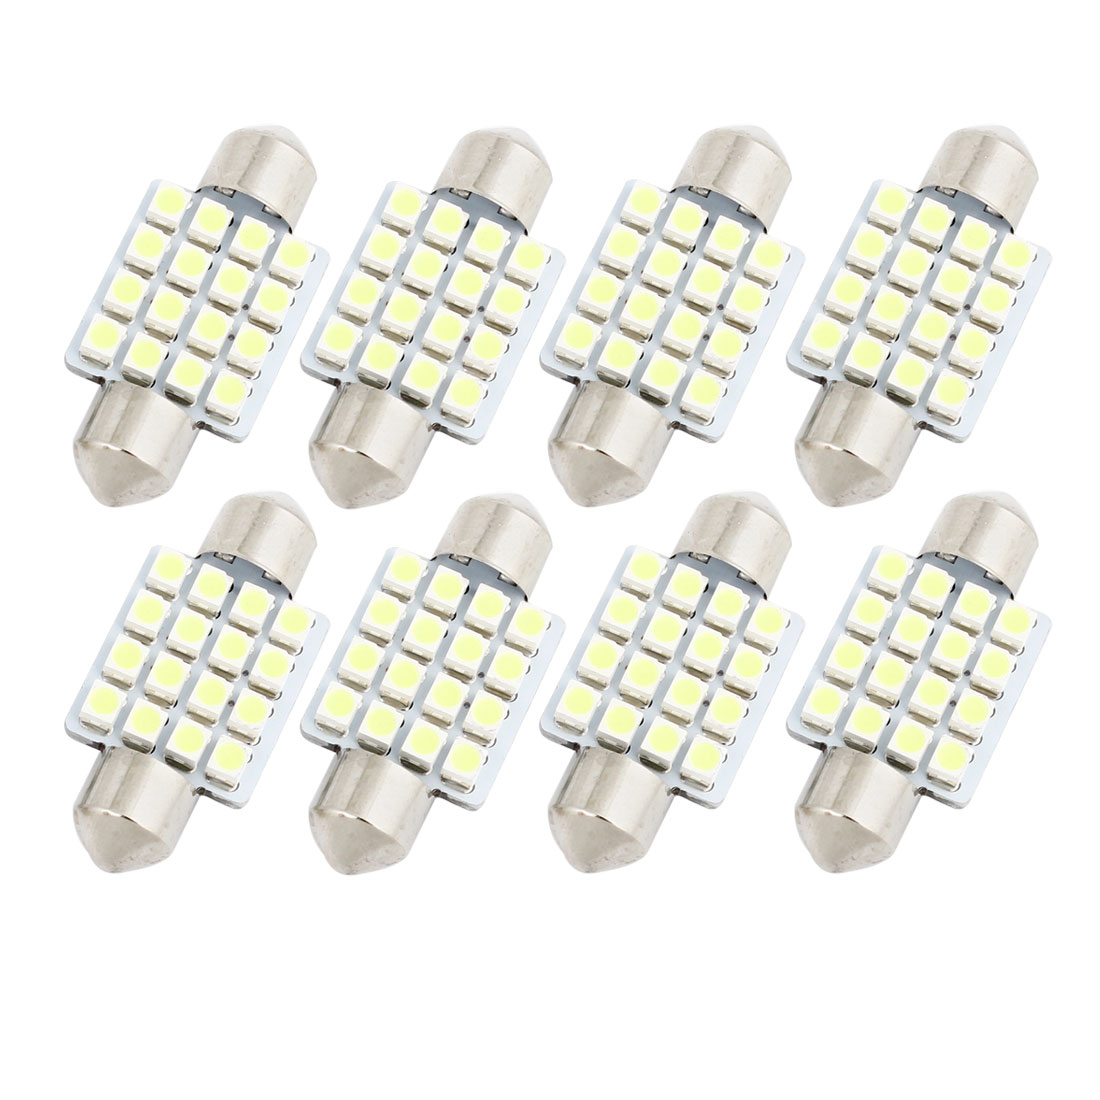 "8 Pcs 36mm 1.5"" 16-SMD 1210 White LED Festoon Dome Light DE3423 6418 Internal"